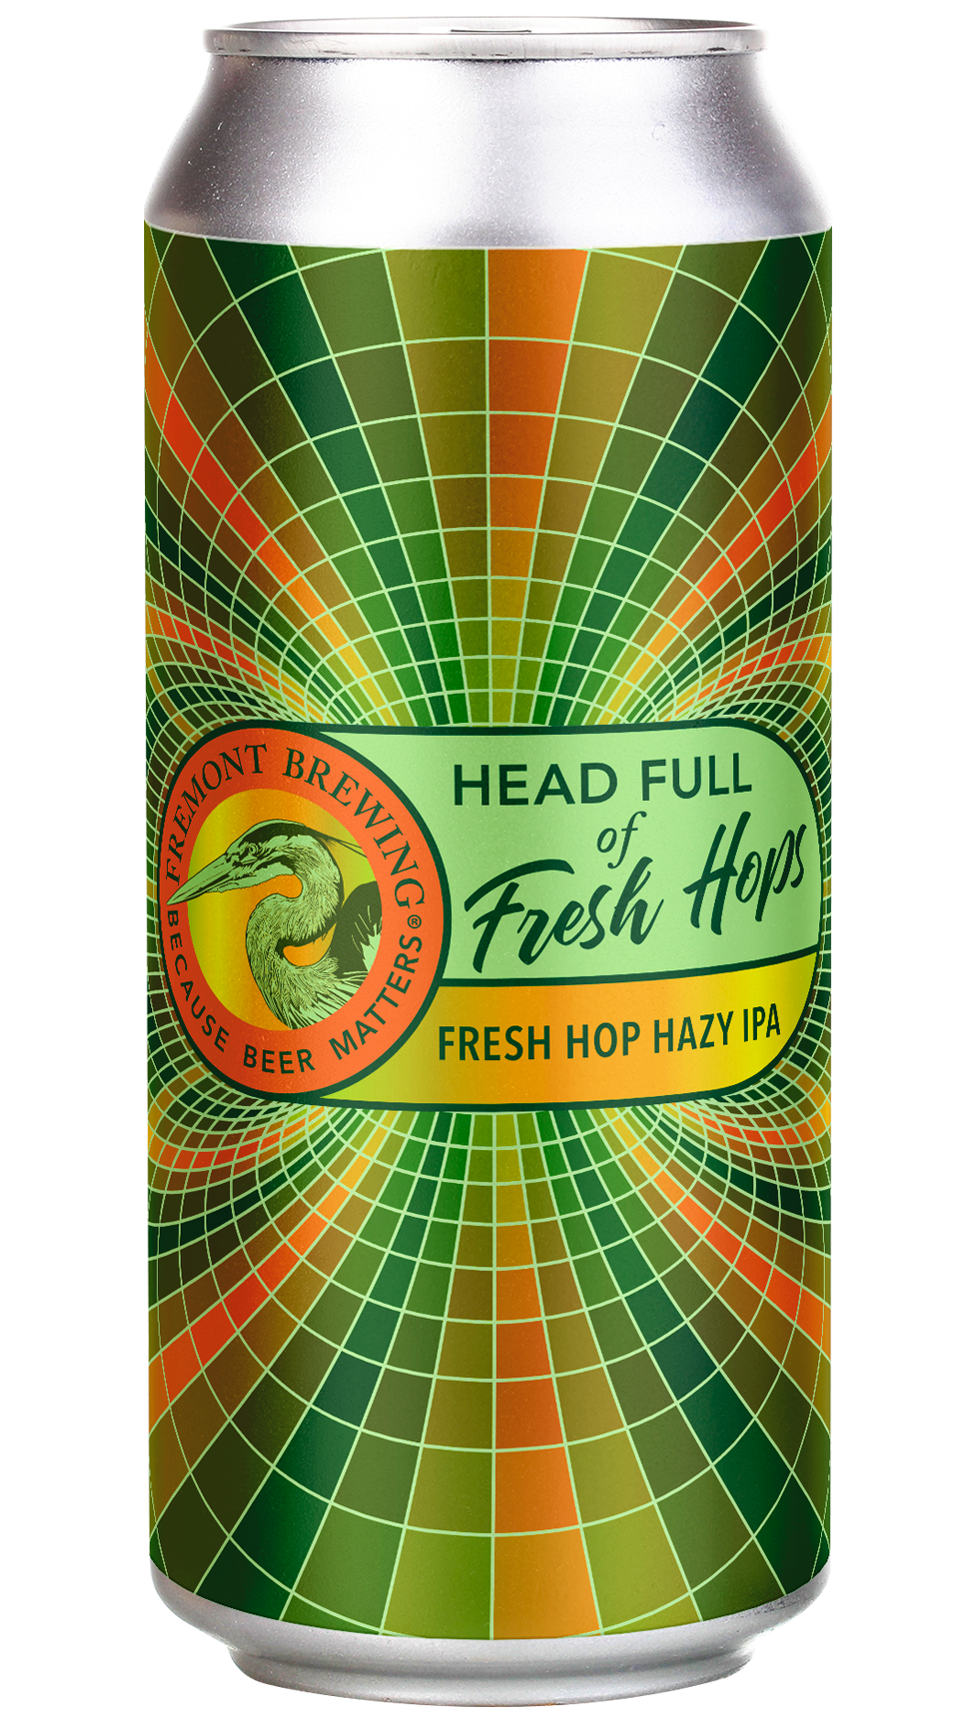 Head Full of Fresh Hops